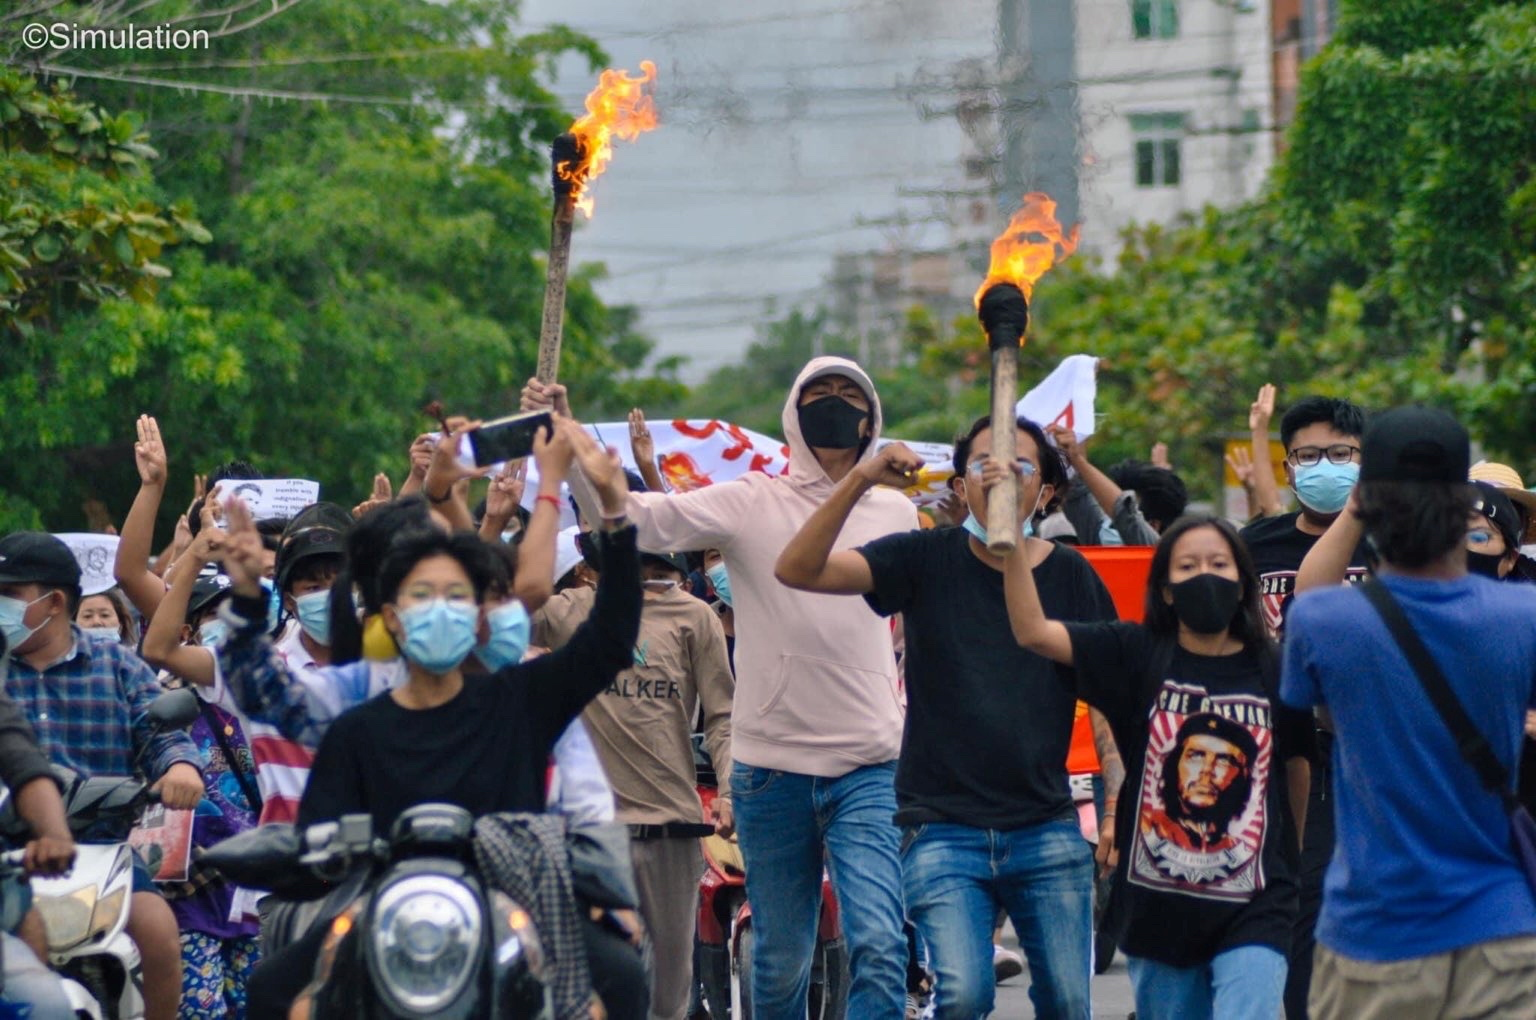 People hold torches during a protest in Mandalay, Myanmar June 14, 2021 in this picture obtained by REUTERS. ATTENTION EDITORS - THIS IMAGE HAS BEEN SUPPLIED BY A THIRD PARTY. NO RESALES. NO ARCHIVES.